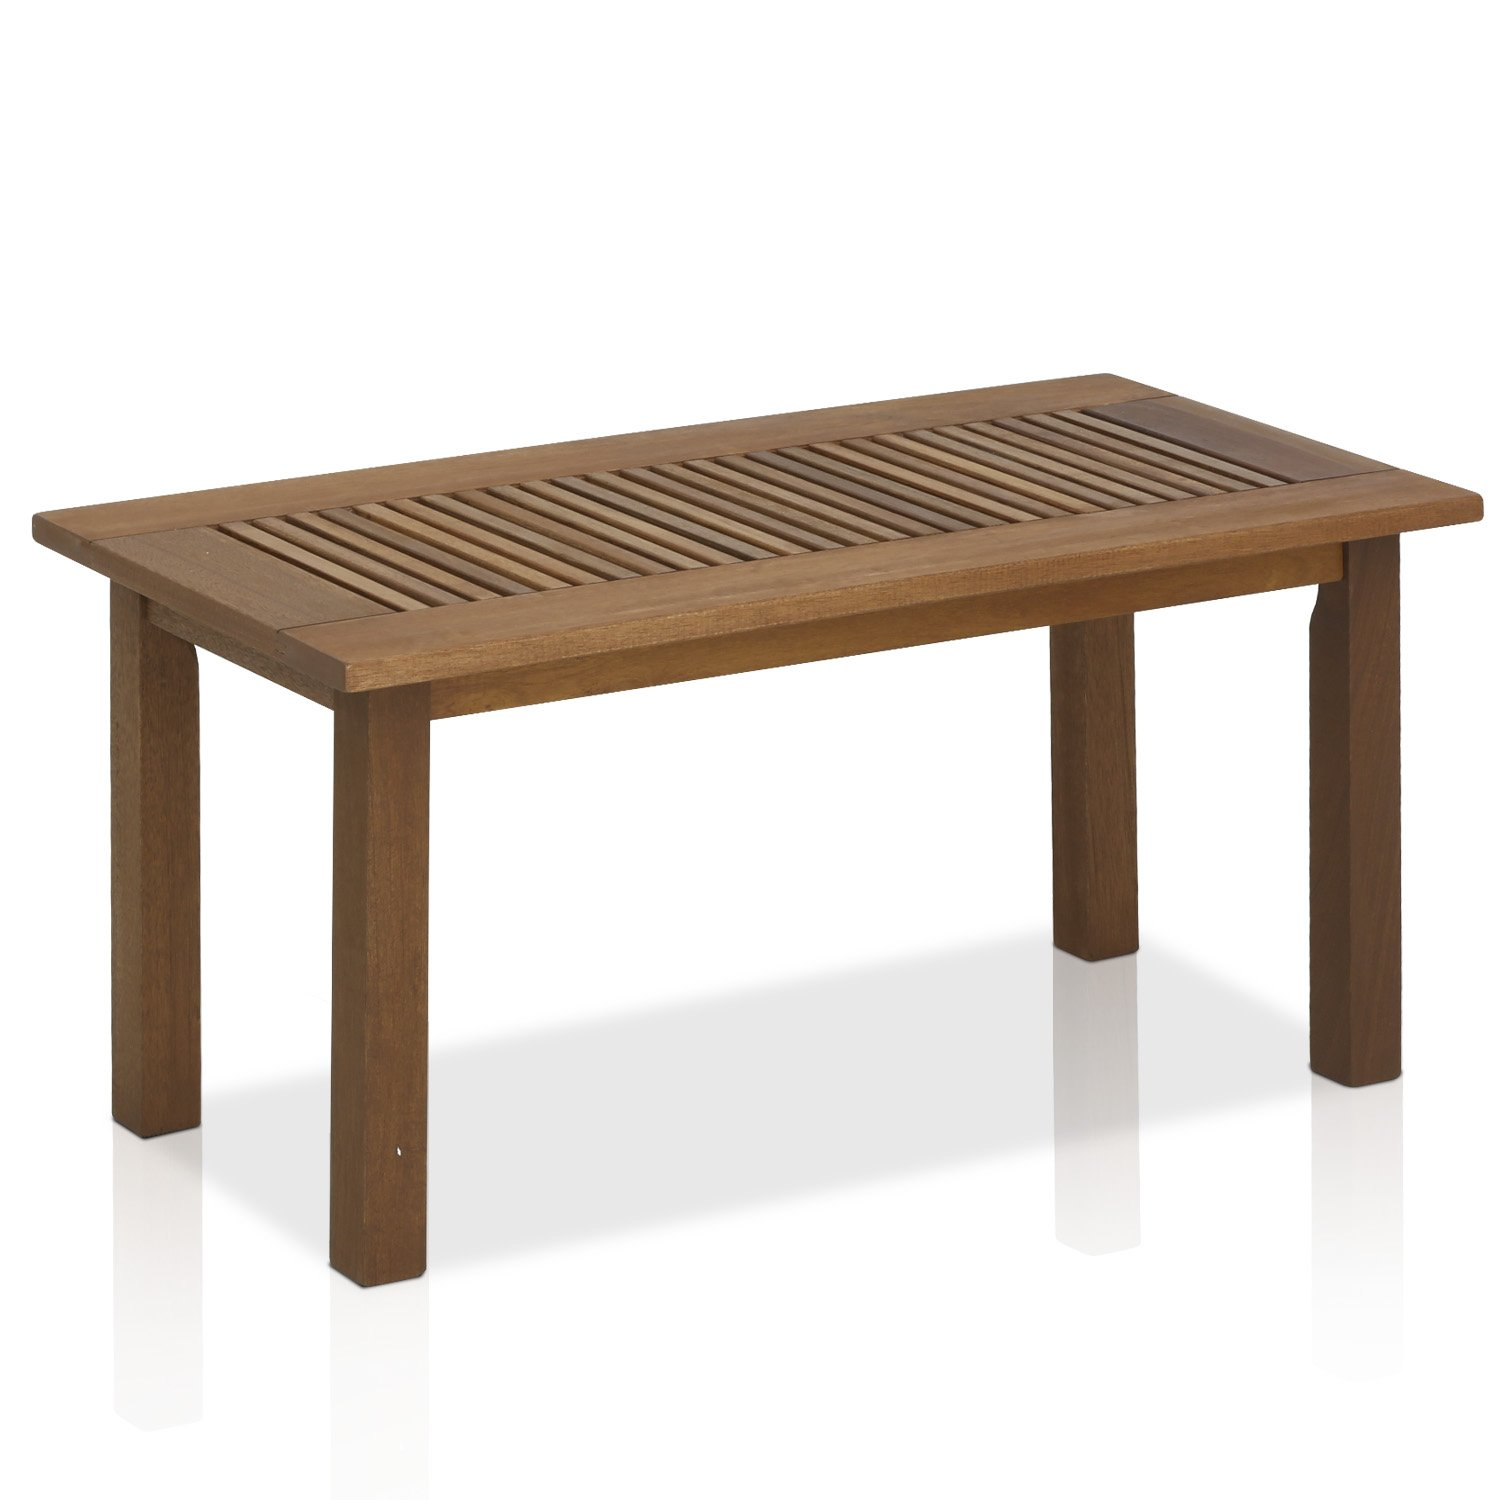 Amazon Furinno Tioman Hardwood Outdoor Coffee Table in Teak